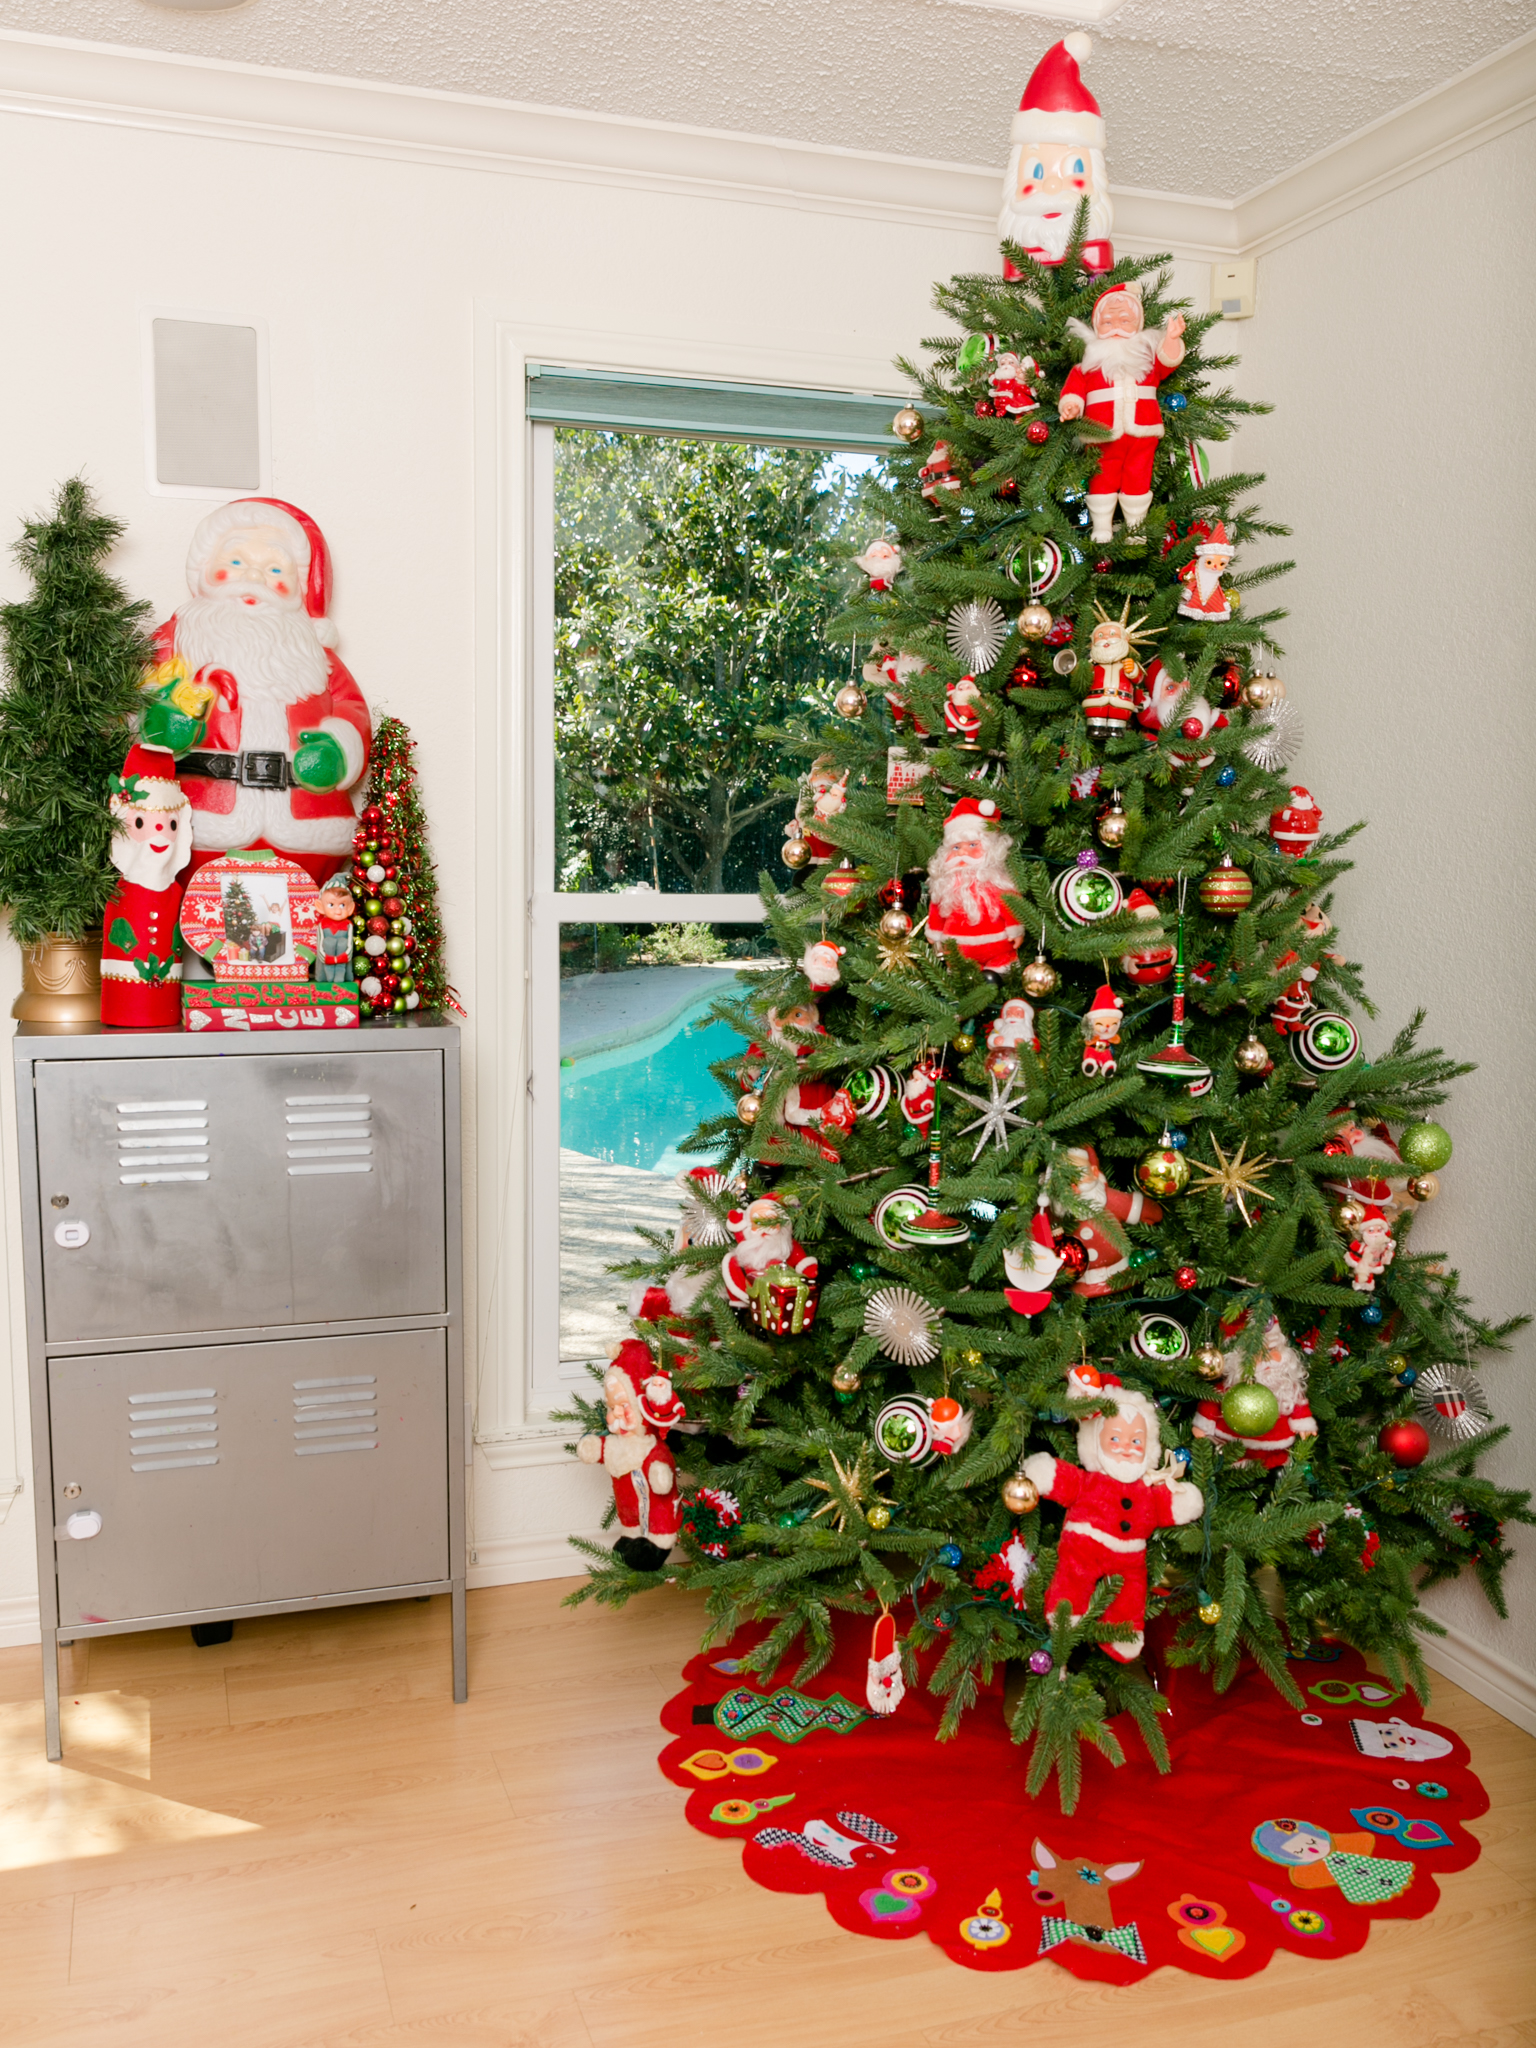 Christmas Tree Decorations Habitat : The best and most inspiring christmas tree decoration